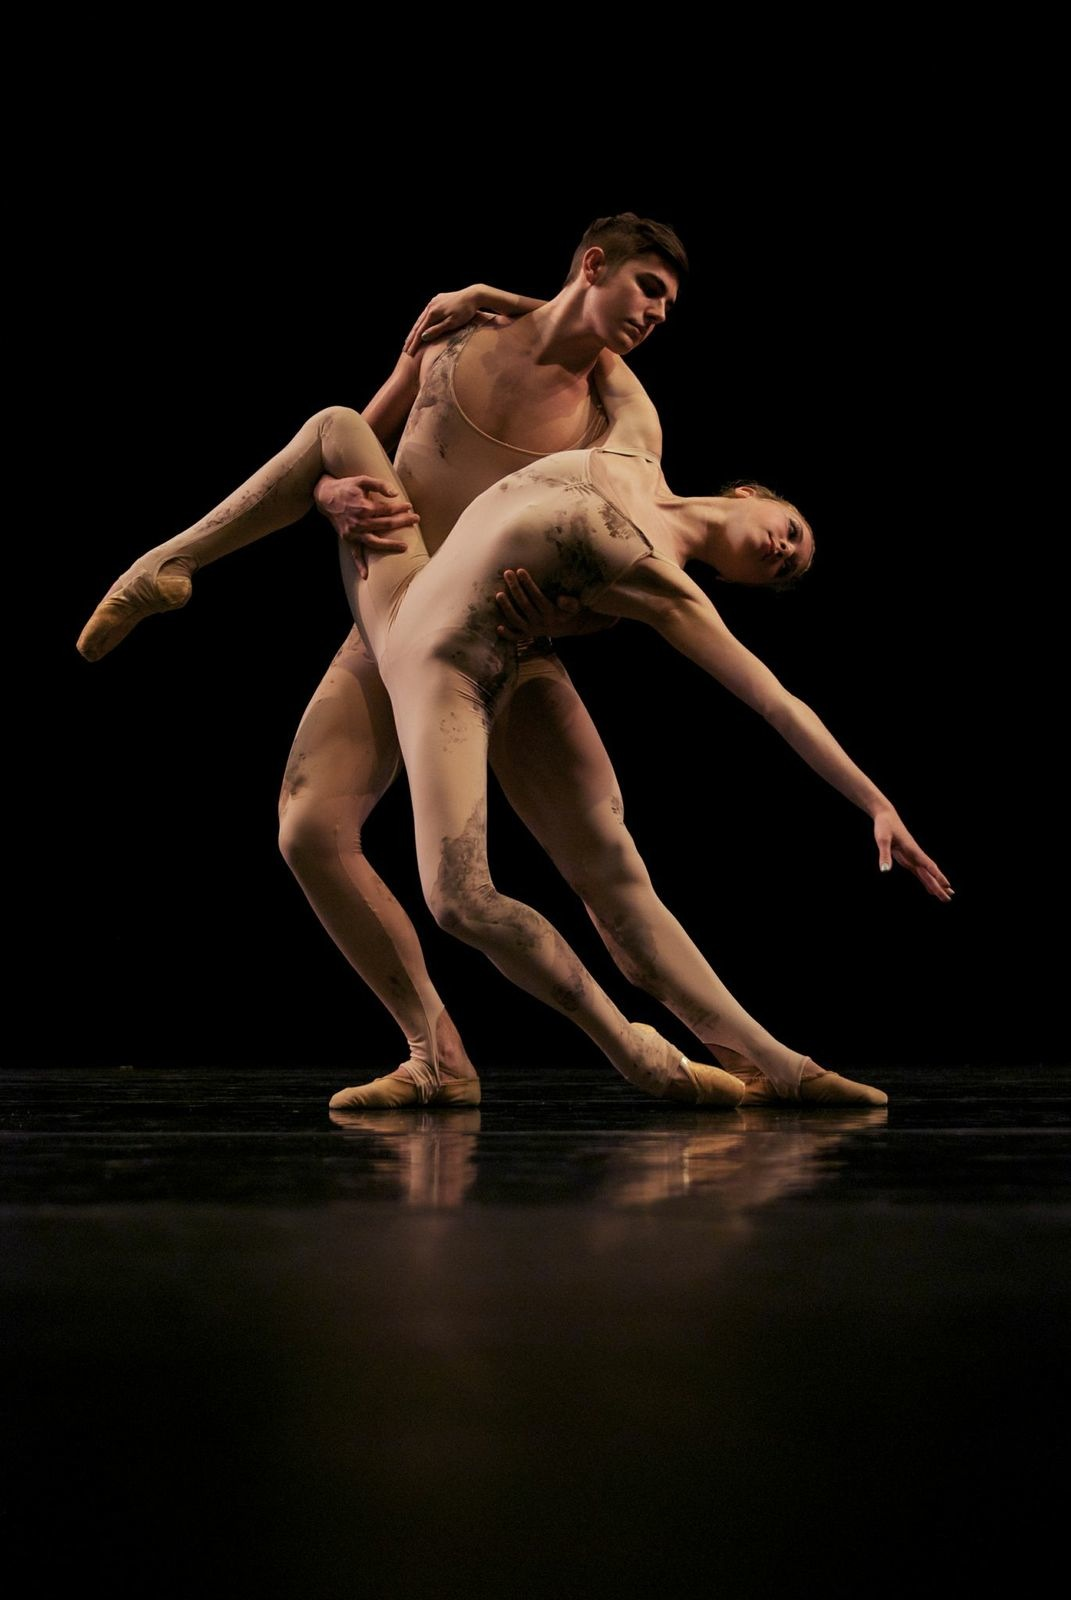 dede erotic movement on stage in contemporary ballet